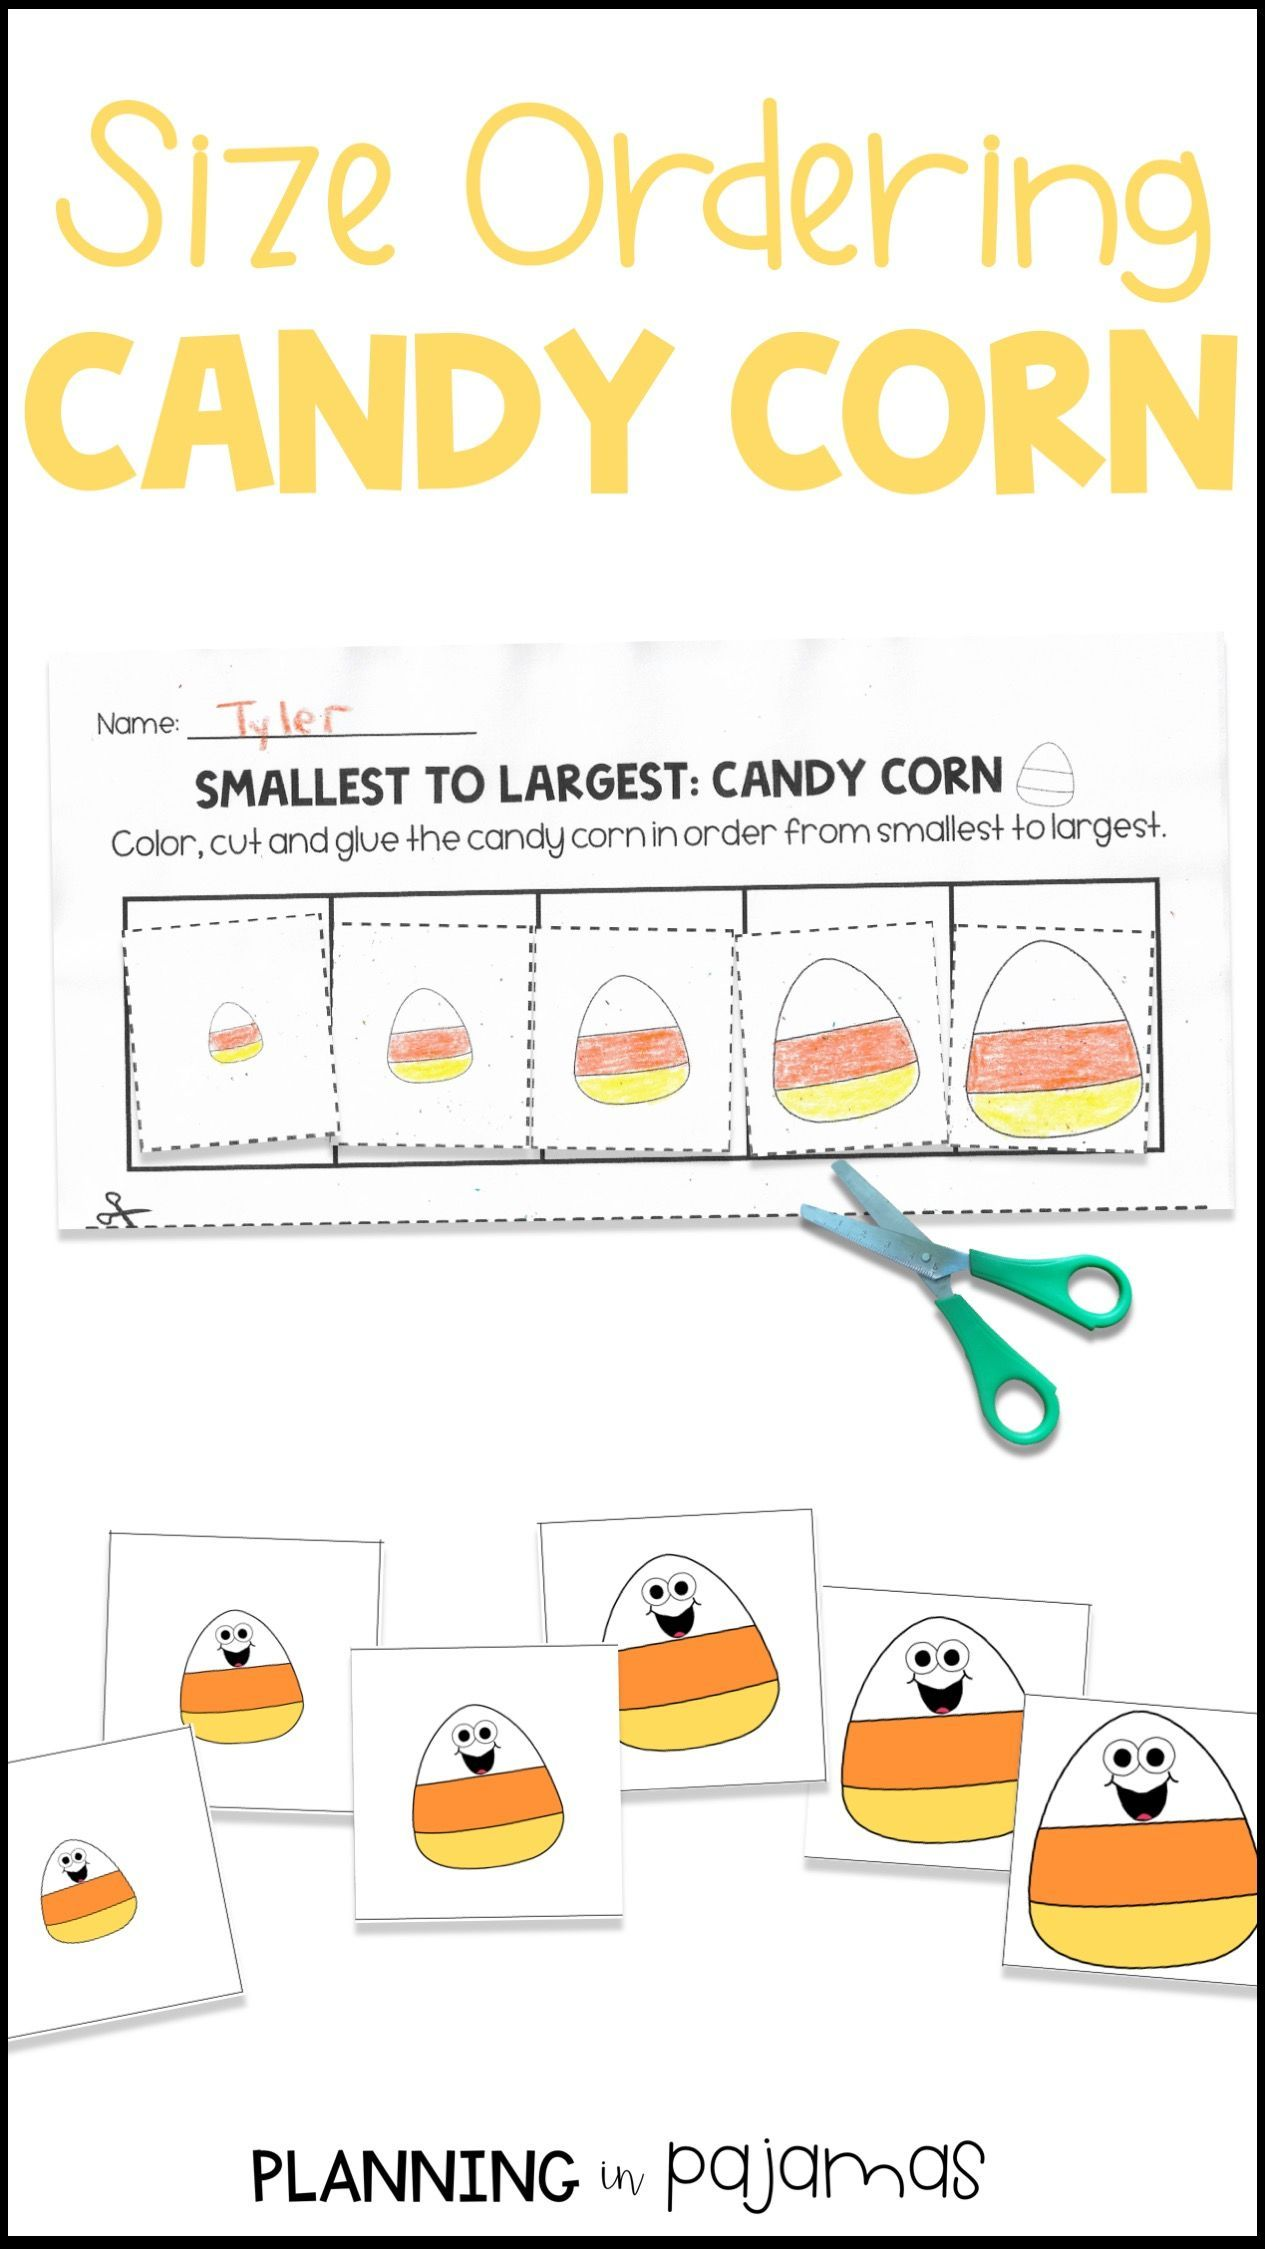 Candy Corn Size Ordering From Smallest To Largest